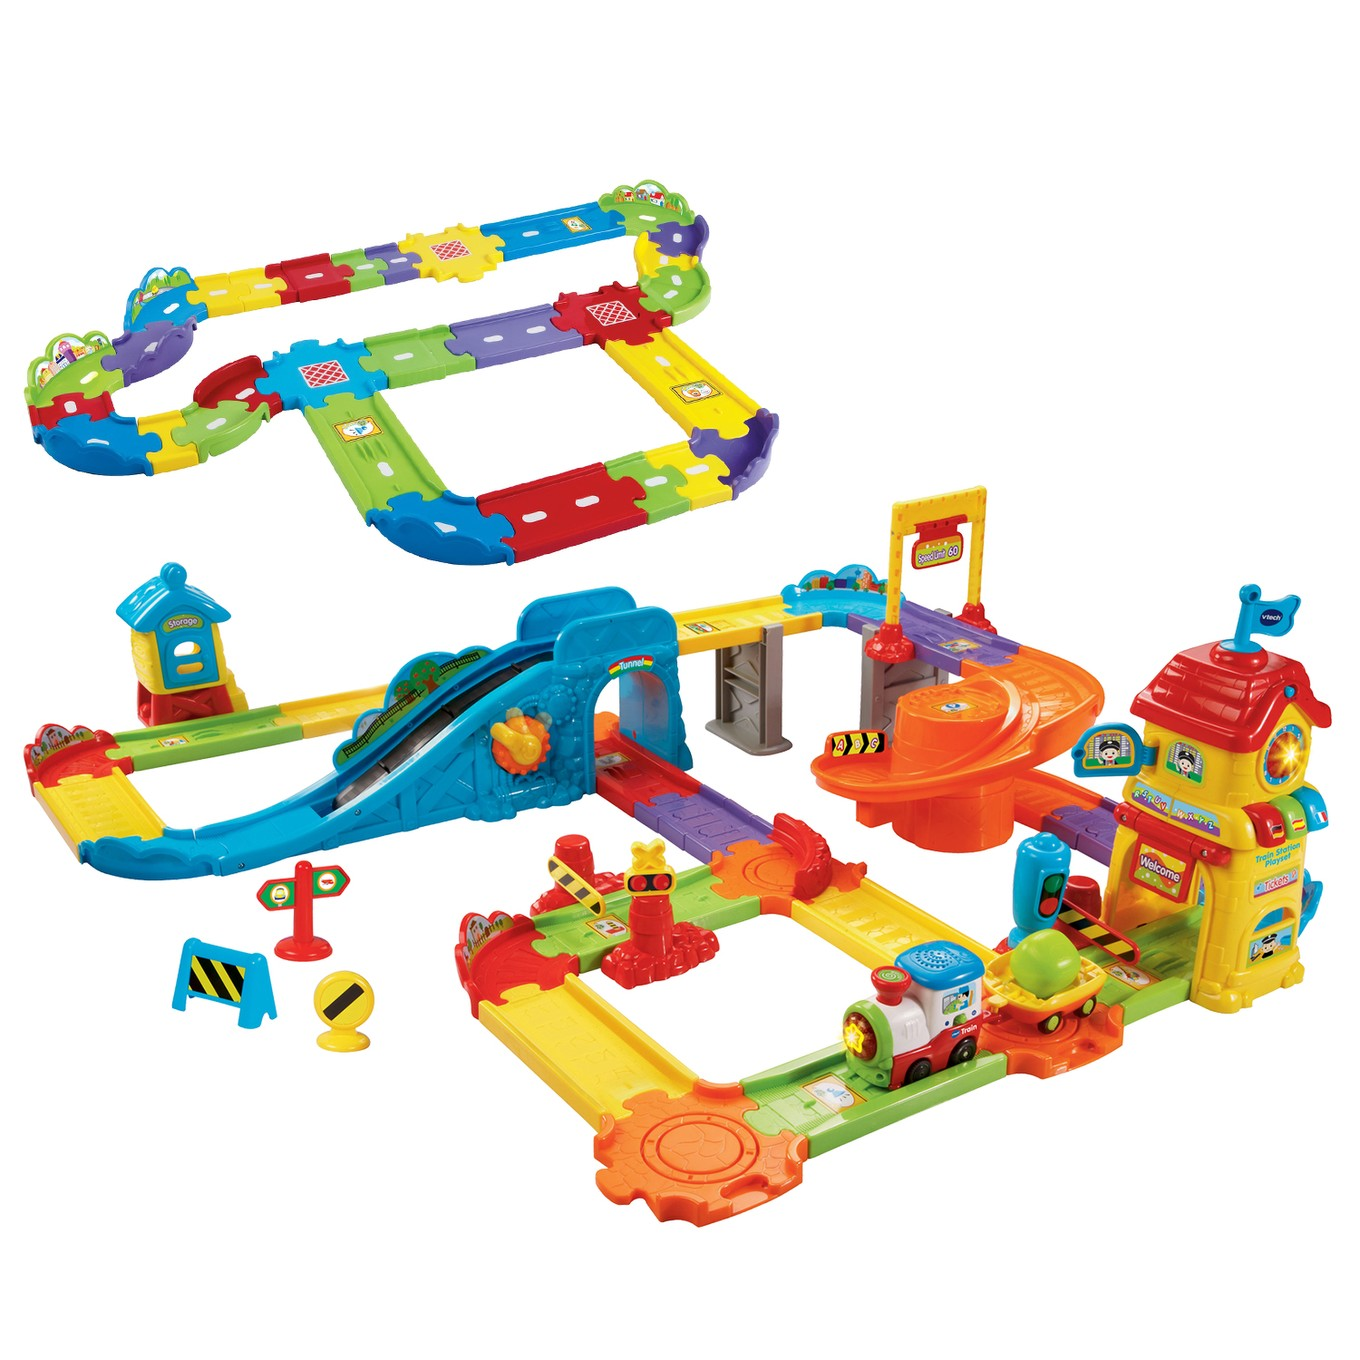 tut tut bolides mon circuit de train interactif de vtech. Black Bedroom Furniture Sets. Home Design Ideas